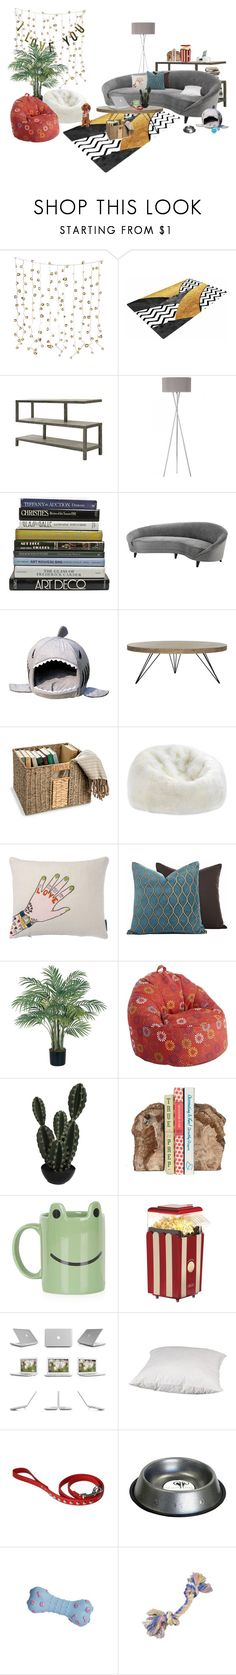 """""""DK.H's dorm: Living room"""" by darkheart-official ❤ liked on Polyvore featuring interior, interiors, interior design, home, home decor, interior decorating, Armen Living, Eichholtz, Safavieh and Improvements"""